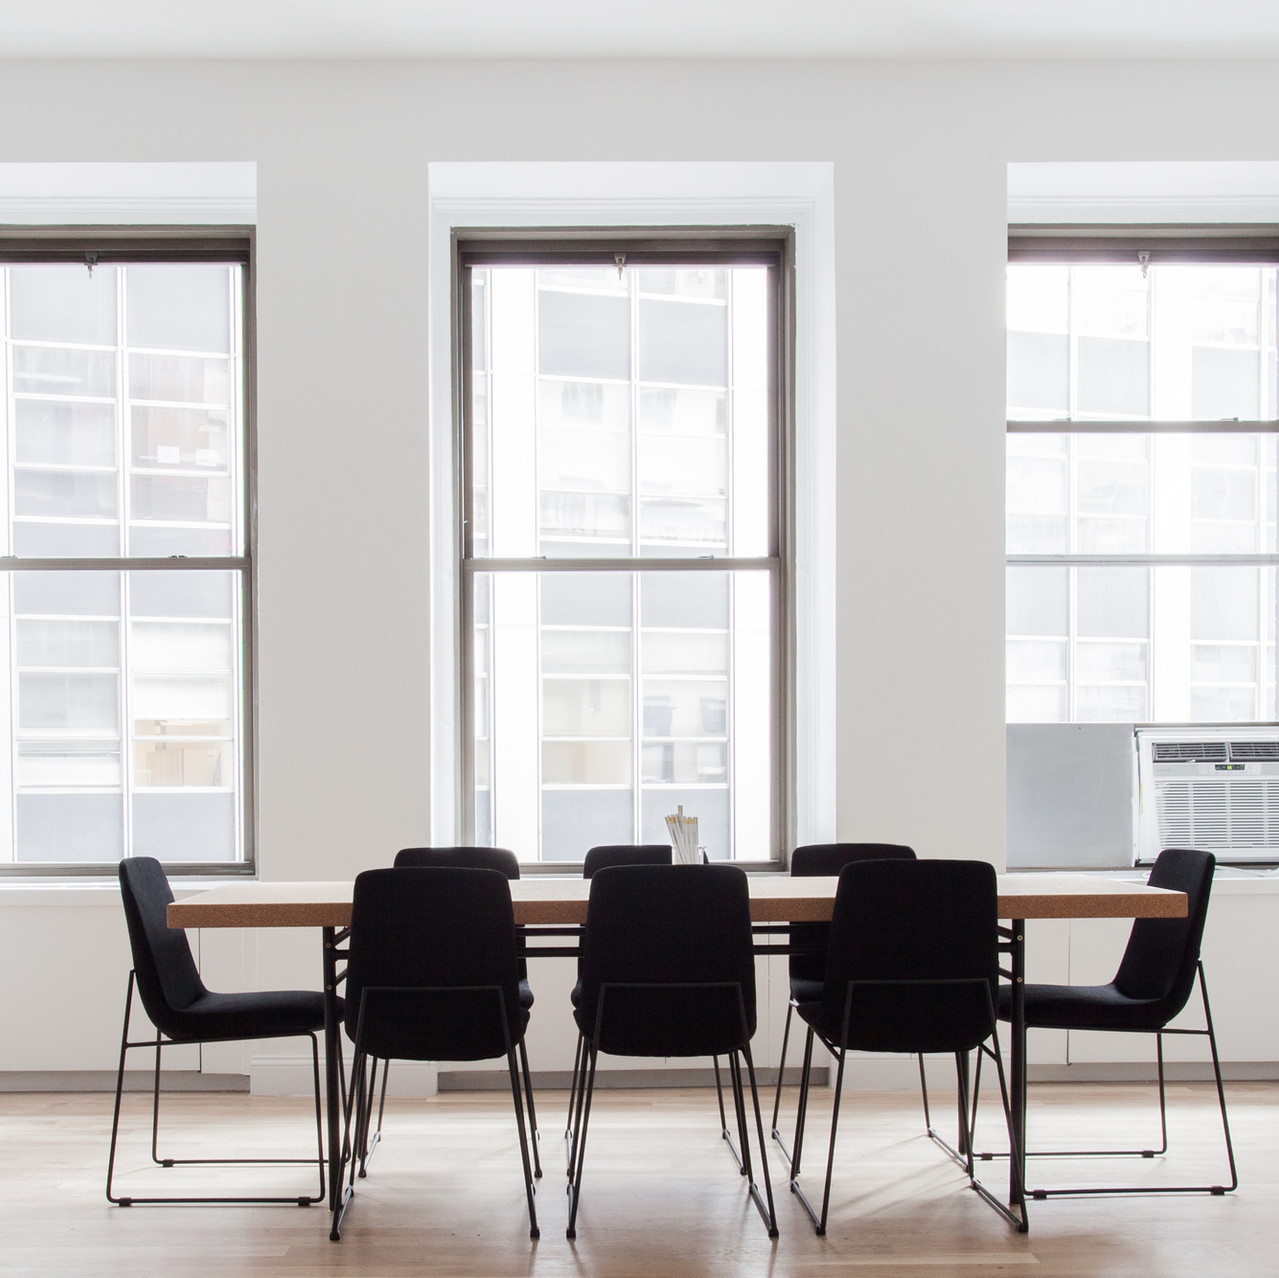 7 Basic Design Ground Rules You Need to Know - design2space, inc. - Meeting space